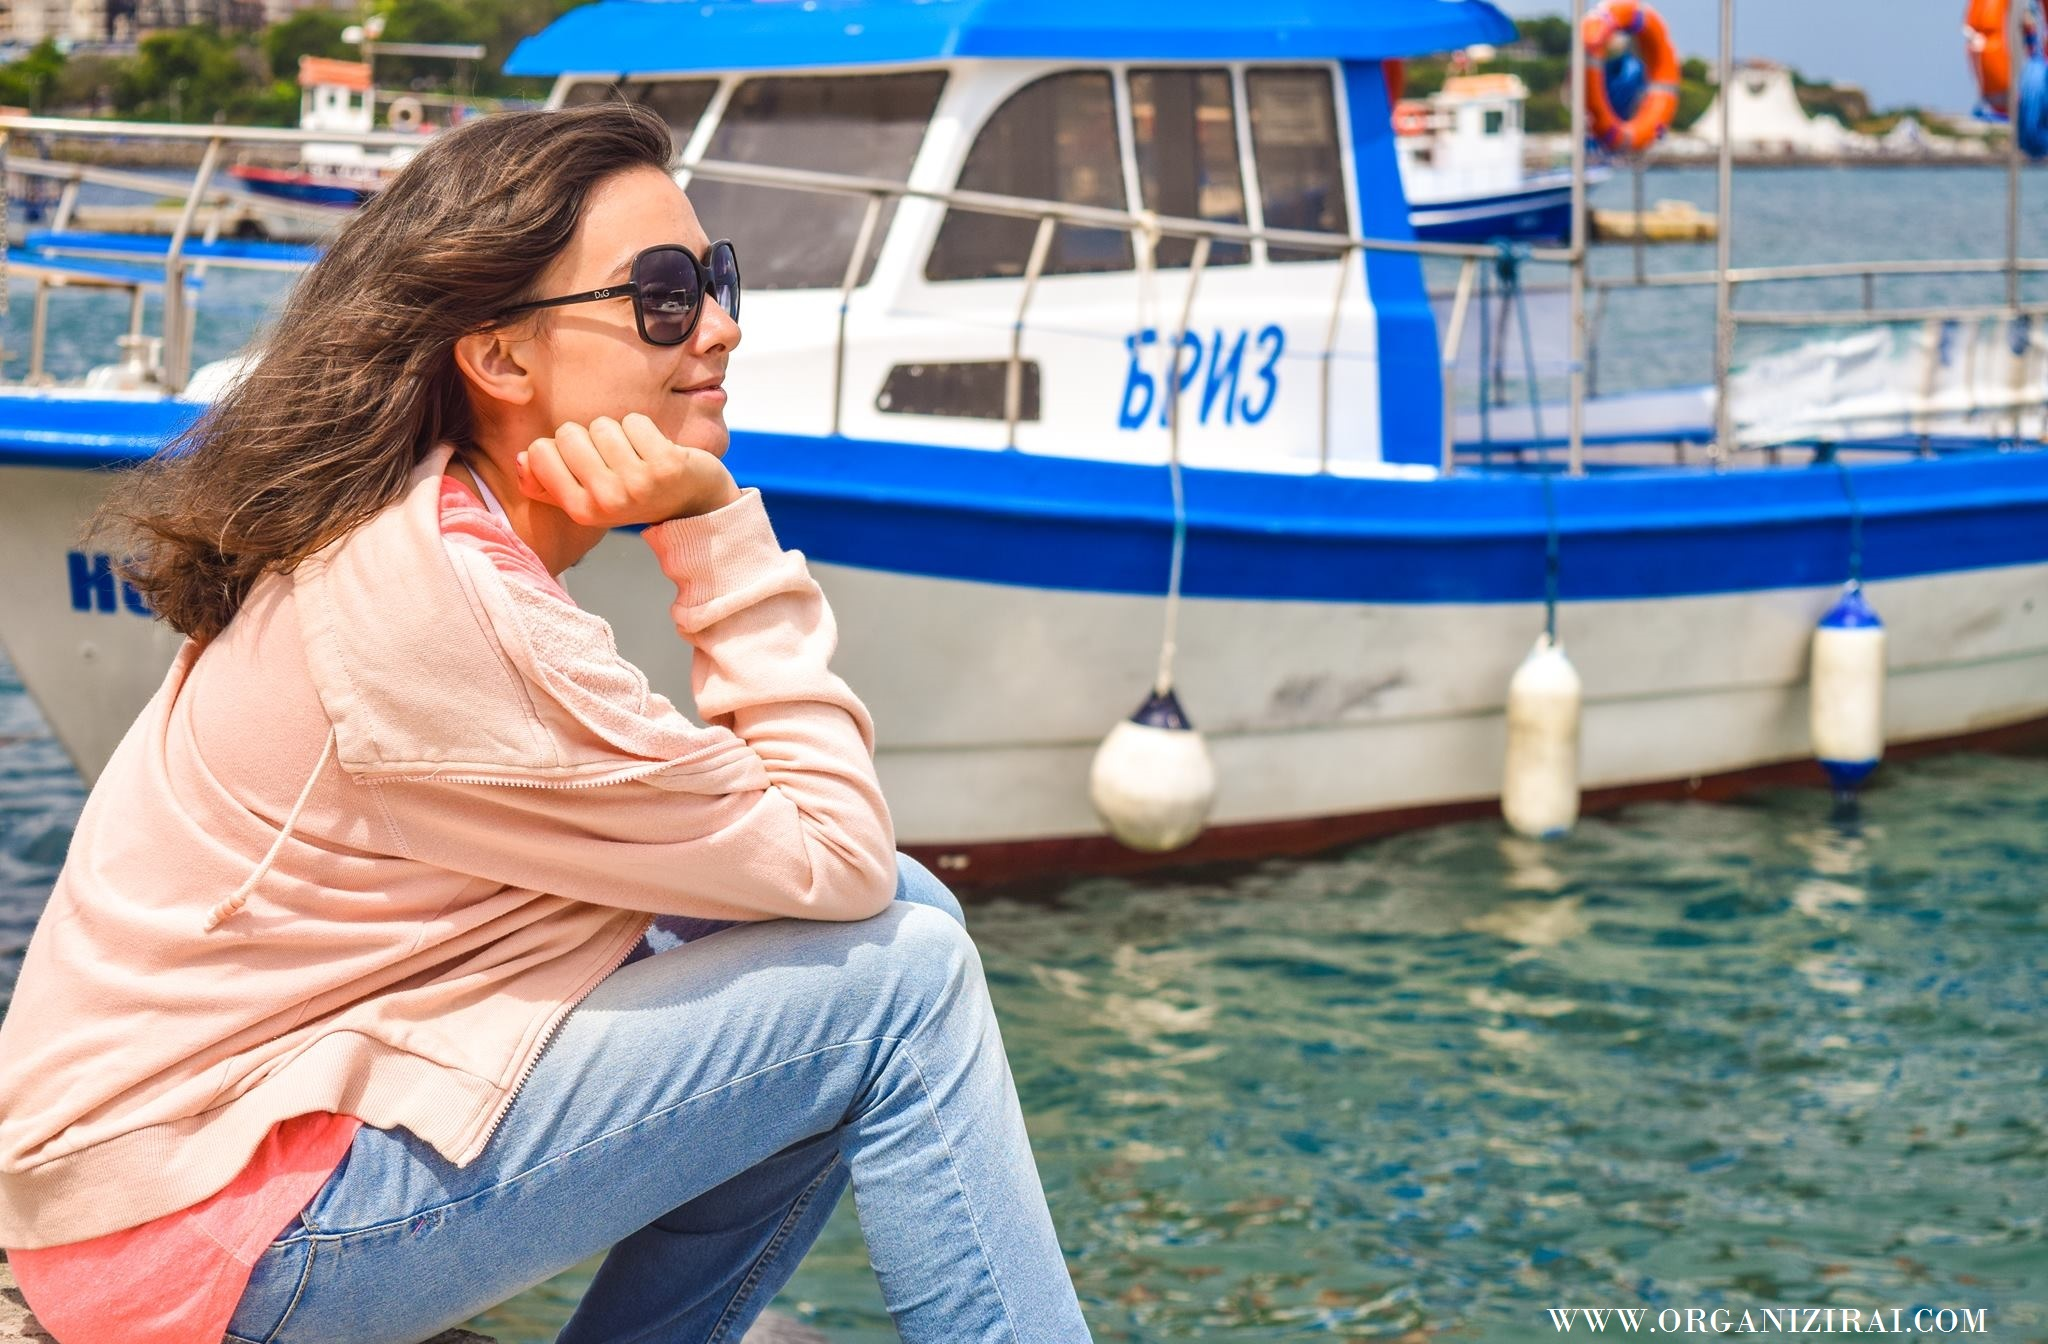 BOAT_SEA-VIBES-VIBRATION-SUMMER-PINK-HOODIE-INSPIRATION-BEST-LIFESTYLE-BLOGS-BULGARIAN-BLOGGERS-ORGANIZIRAI.COM16